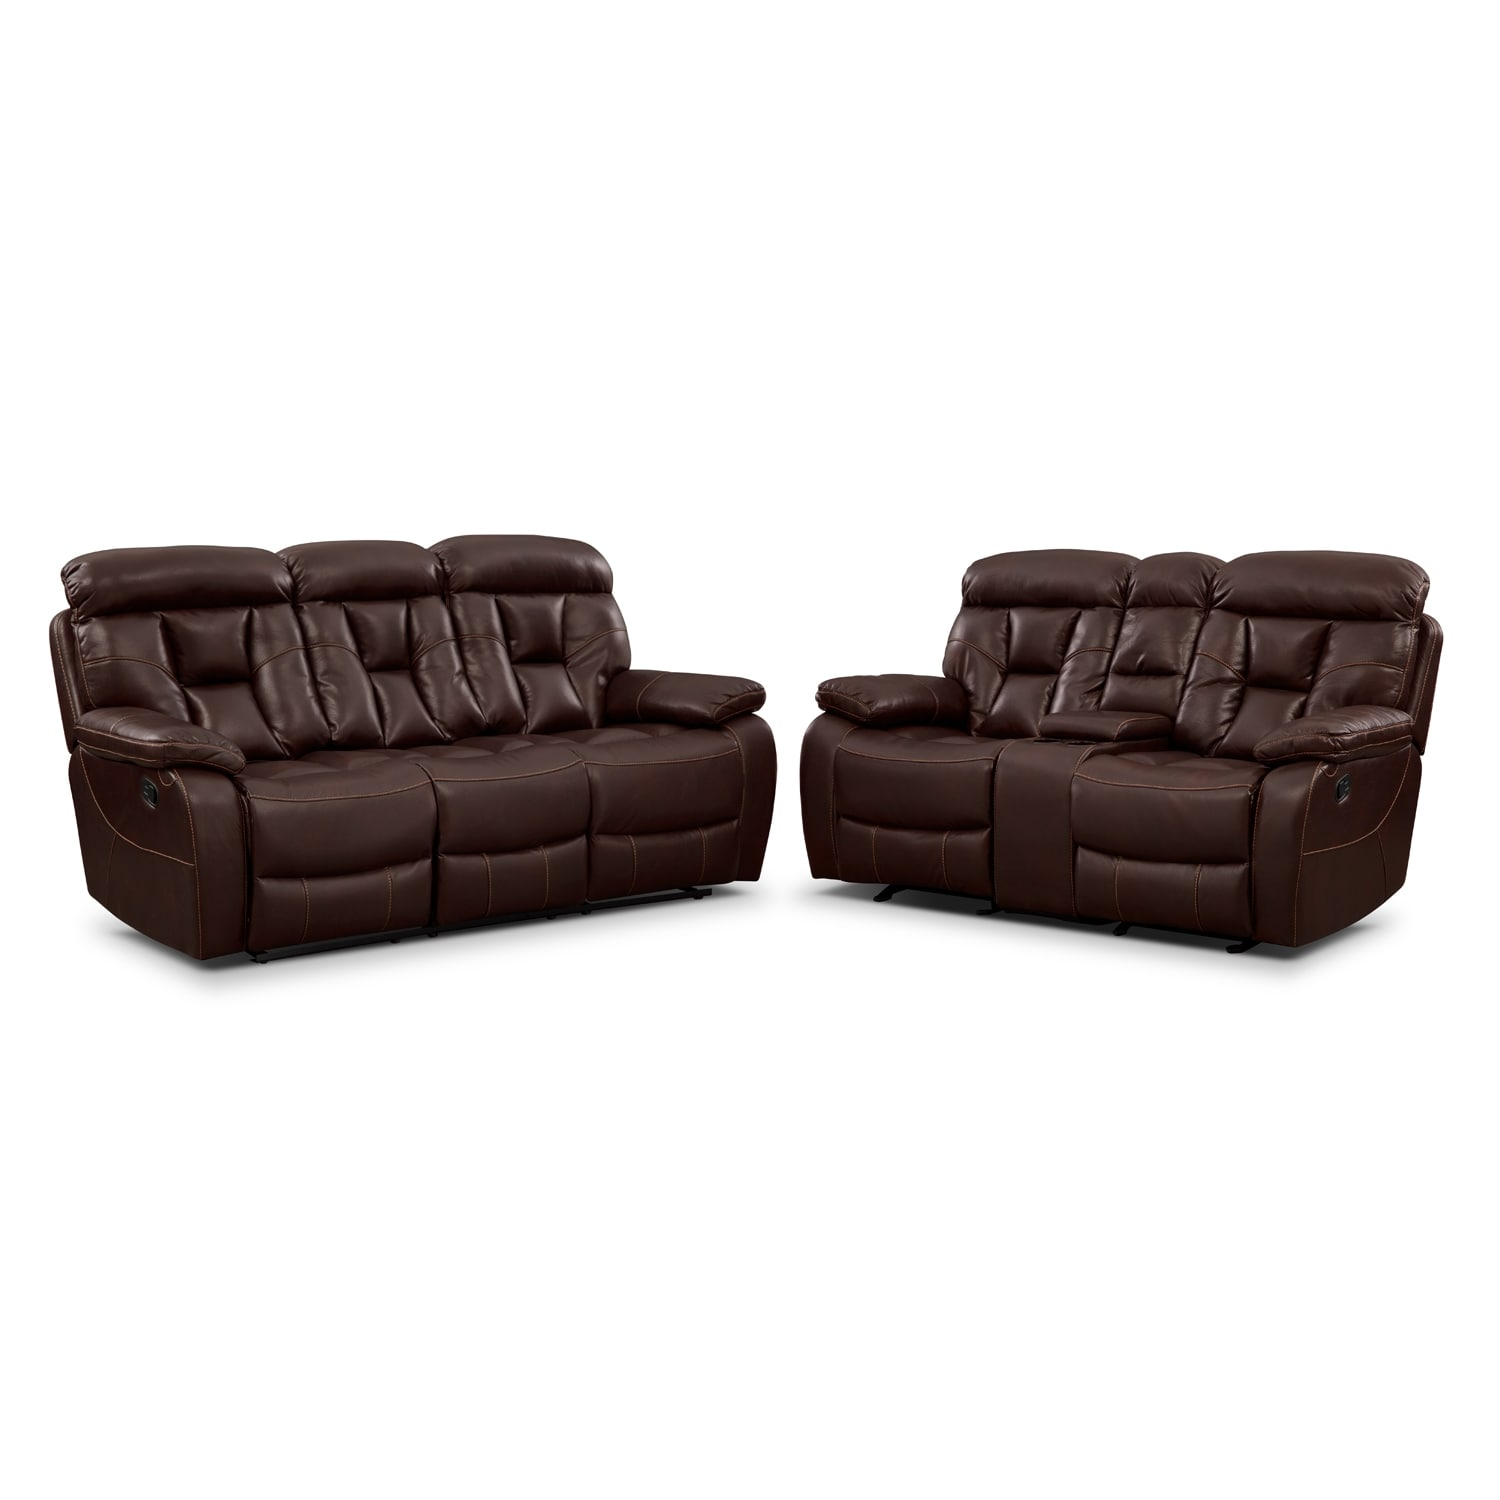 Dakota Reclining Sofa and Gliding Loveseat Set - Java by One80  sc 1 st  Value City Furniture : gliding loveseat recliner - islam-shia.org